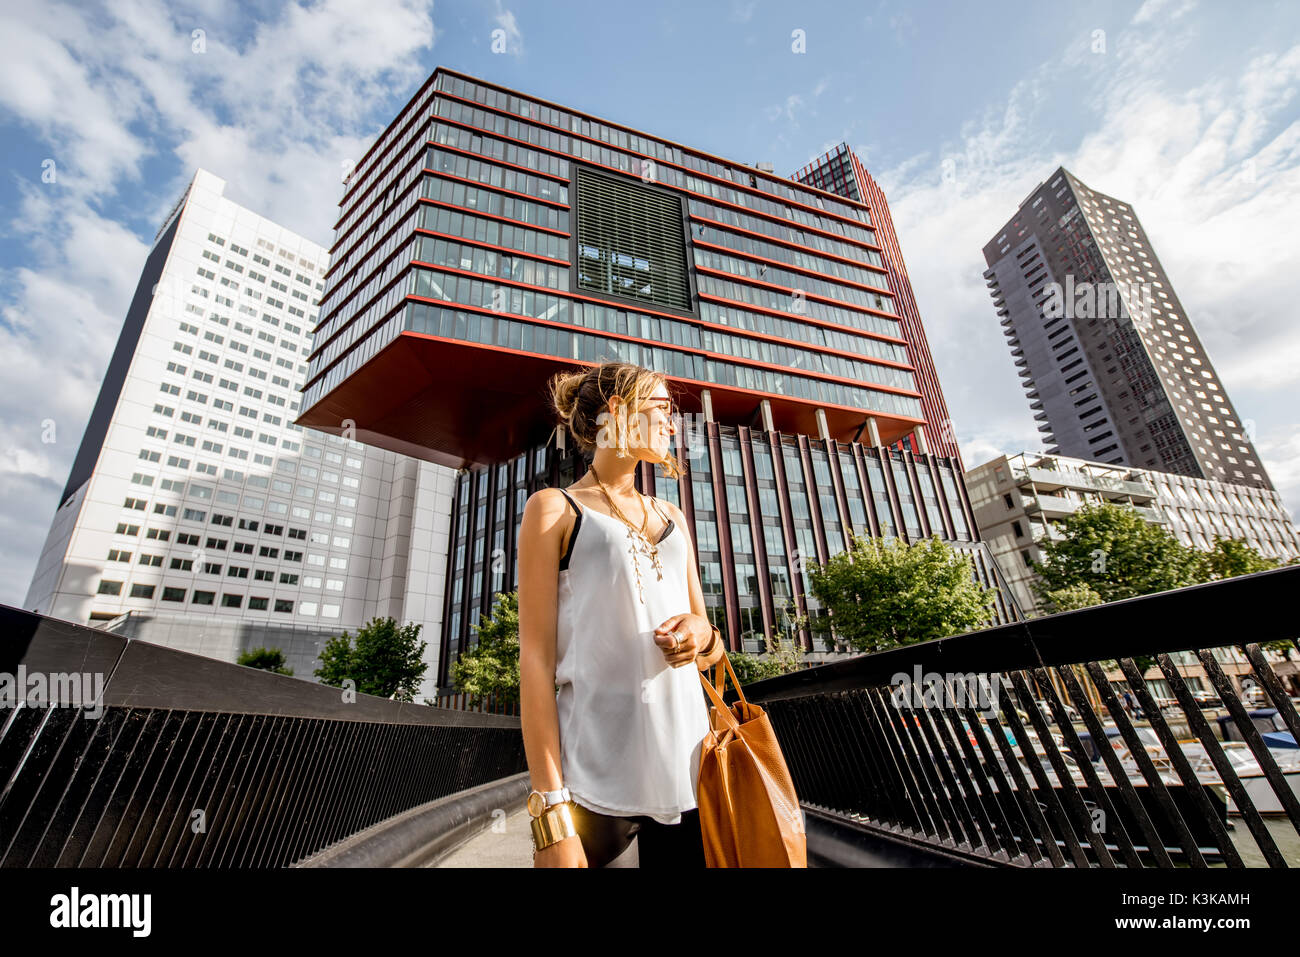 Woman in Rotterdam city - Stock Image